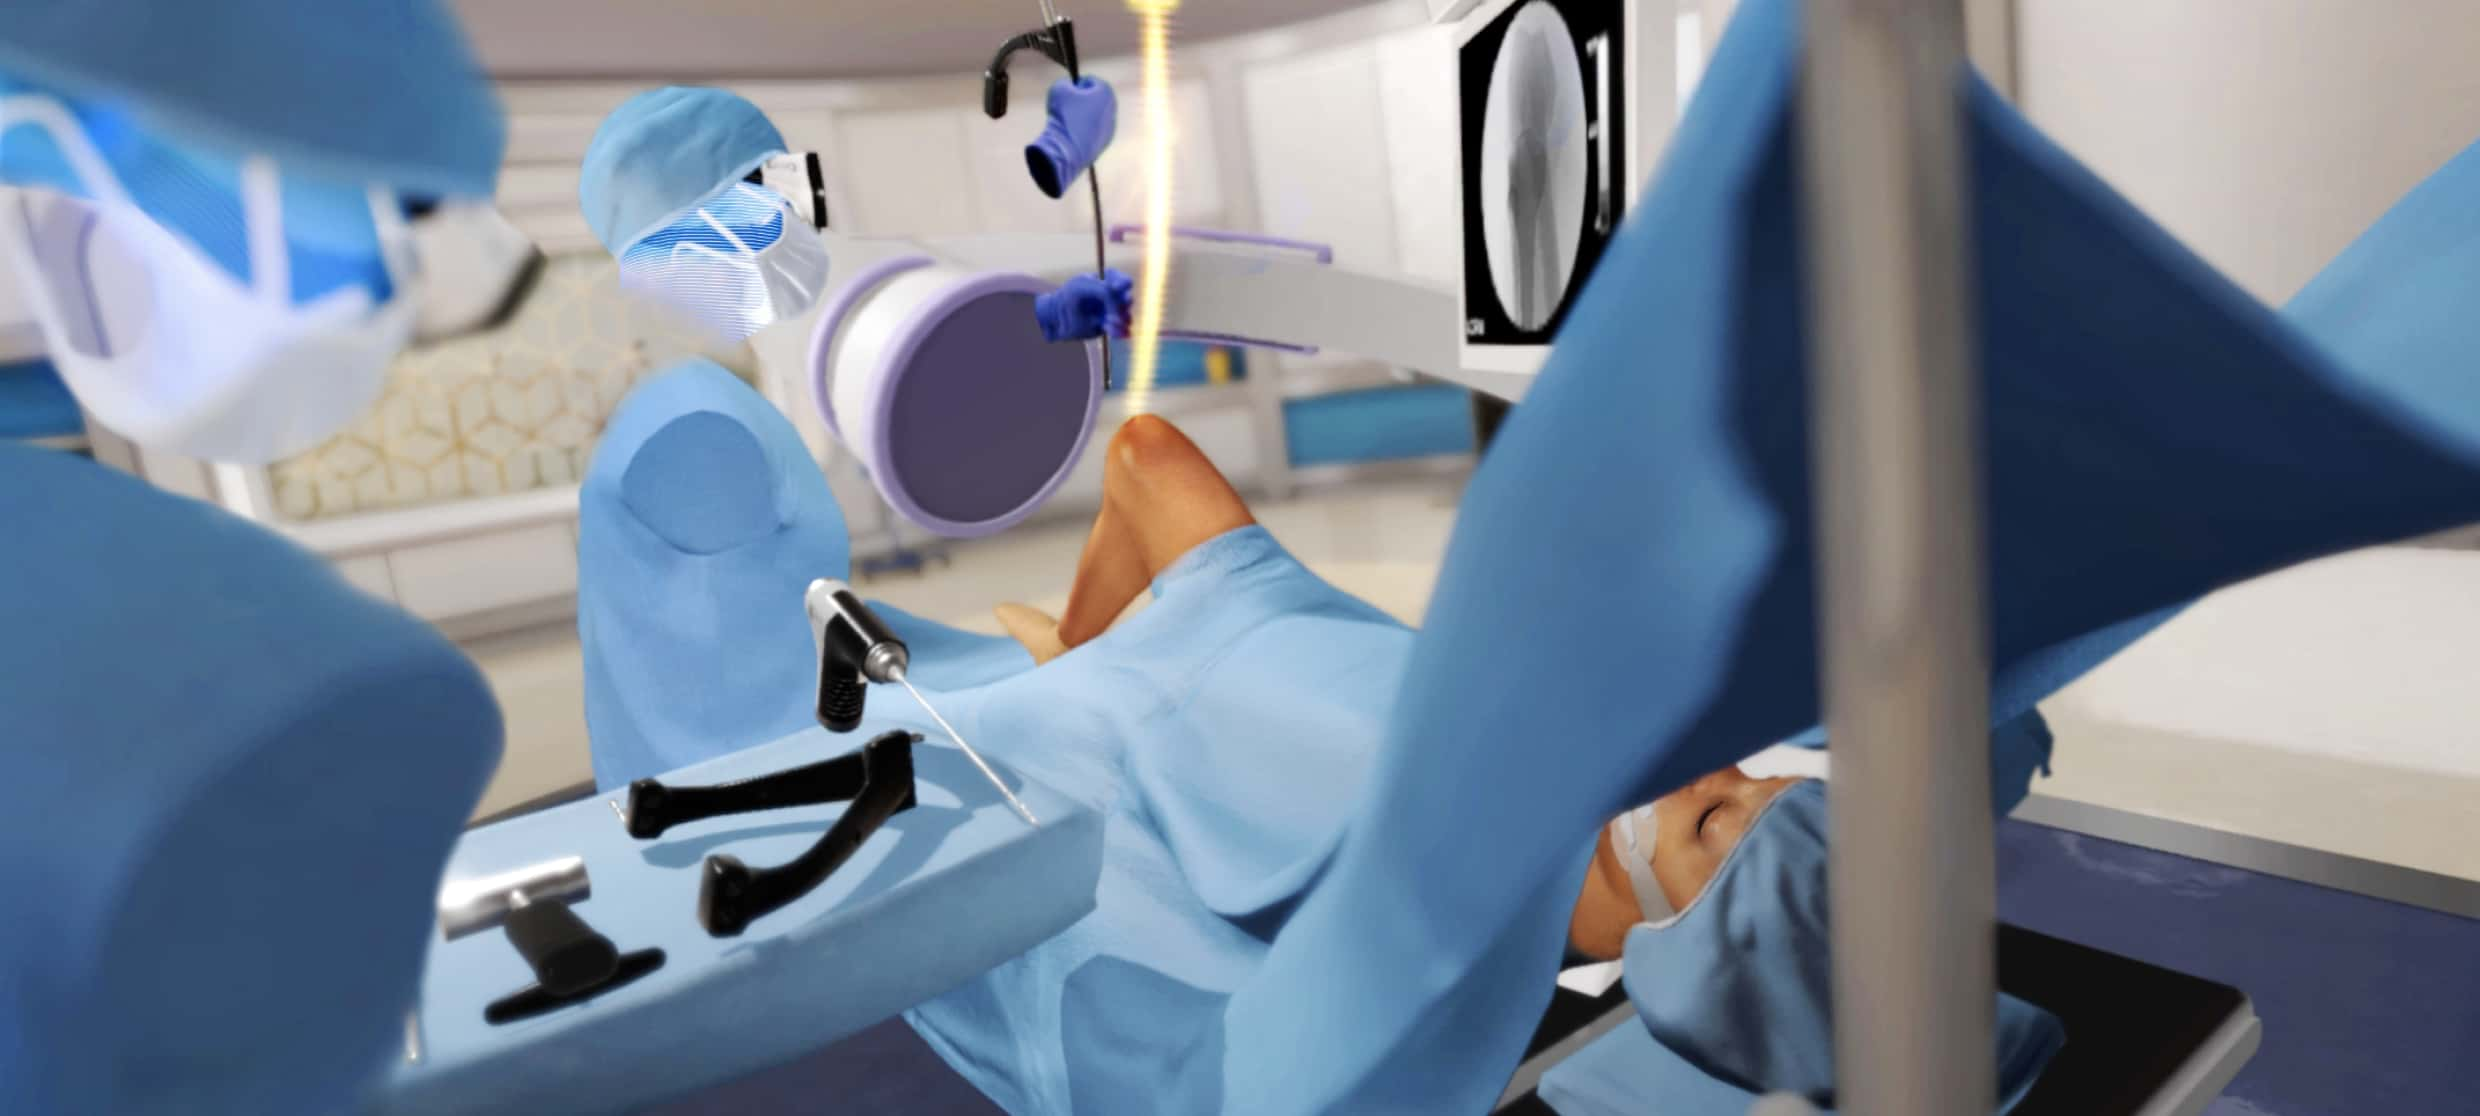 Rendering of Osso VR experience showing avatars performing a surgery.